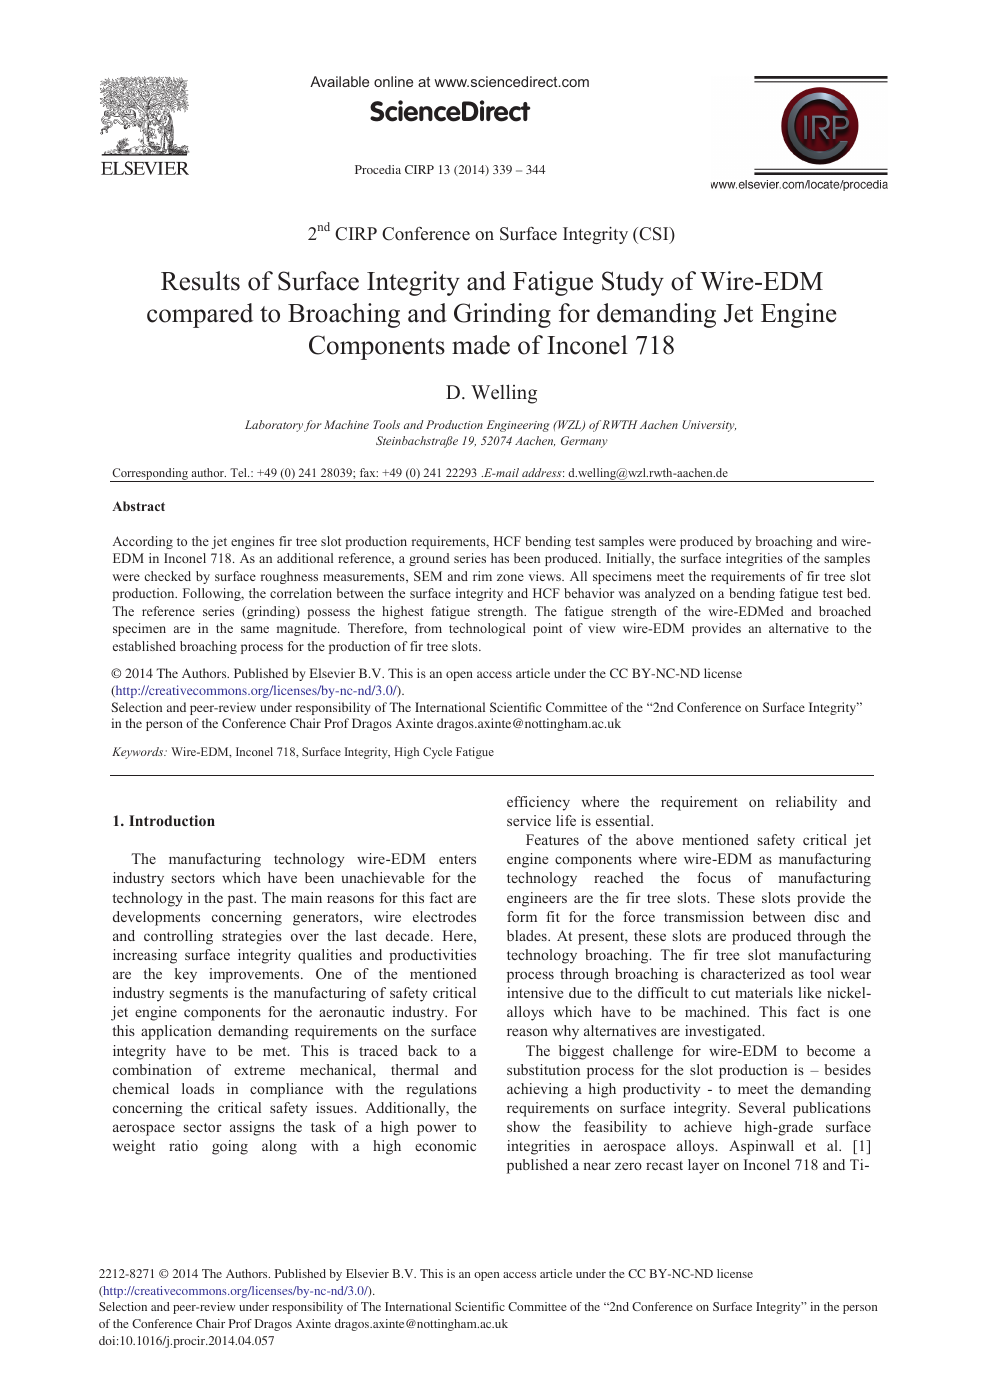 Results of Surface Integrity and Fatigue Study of Wire-EDM Compared